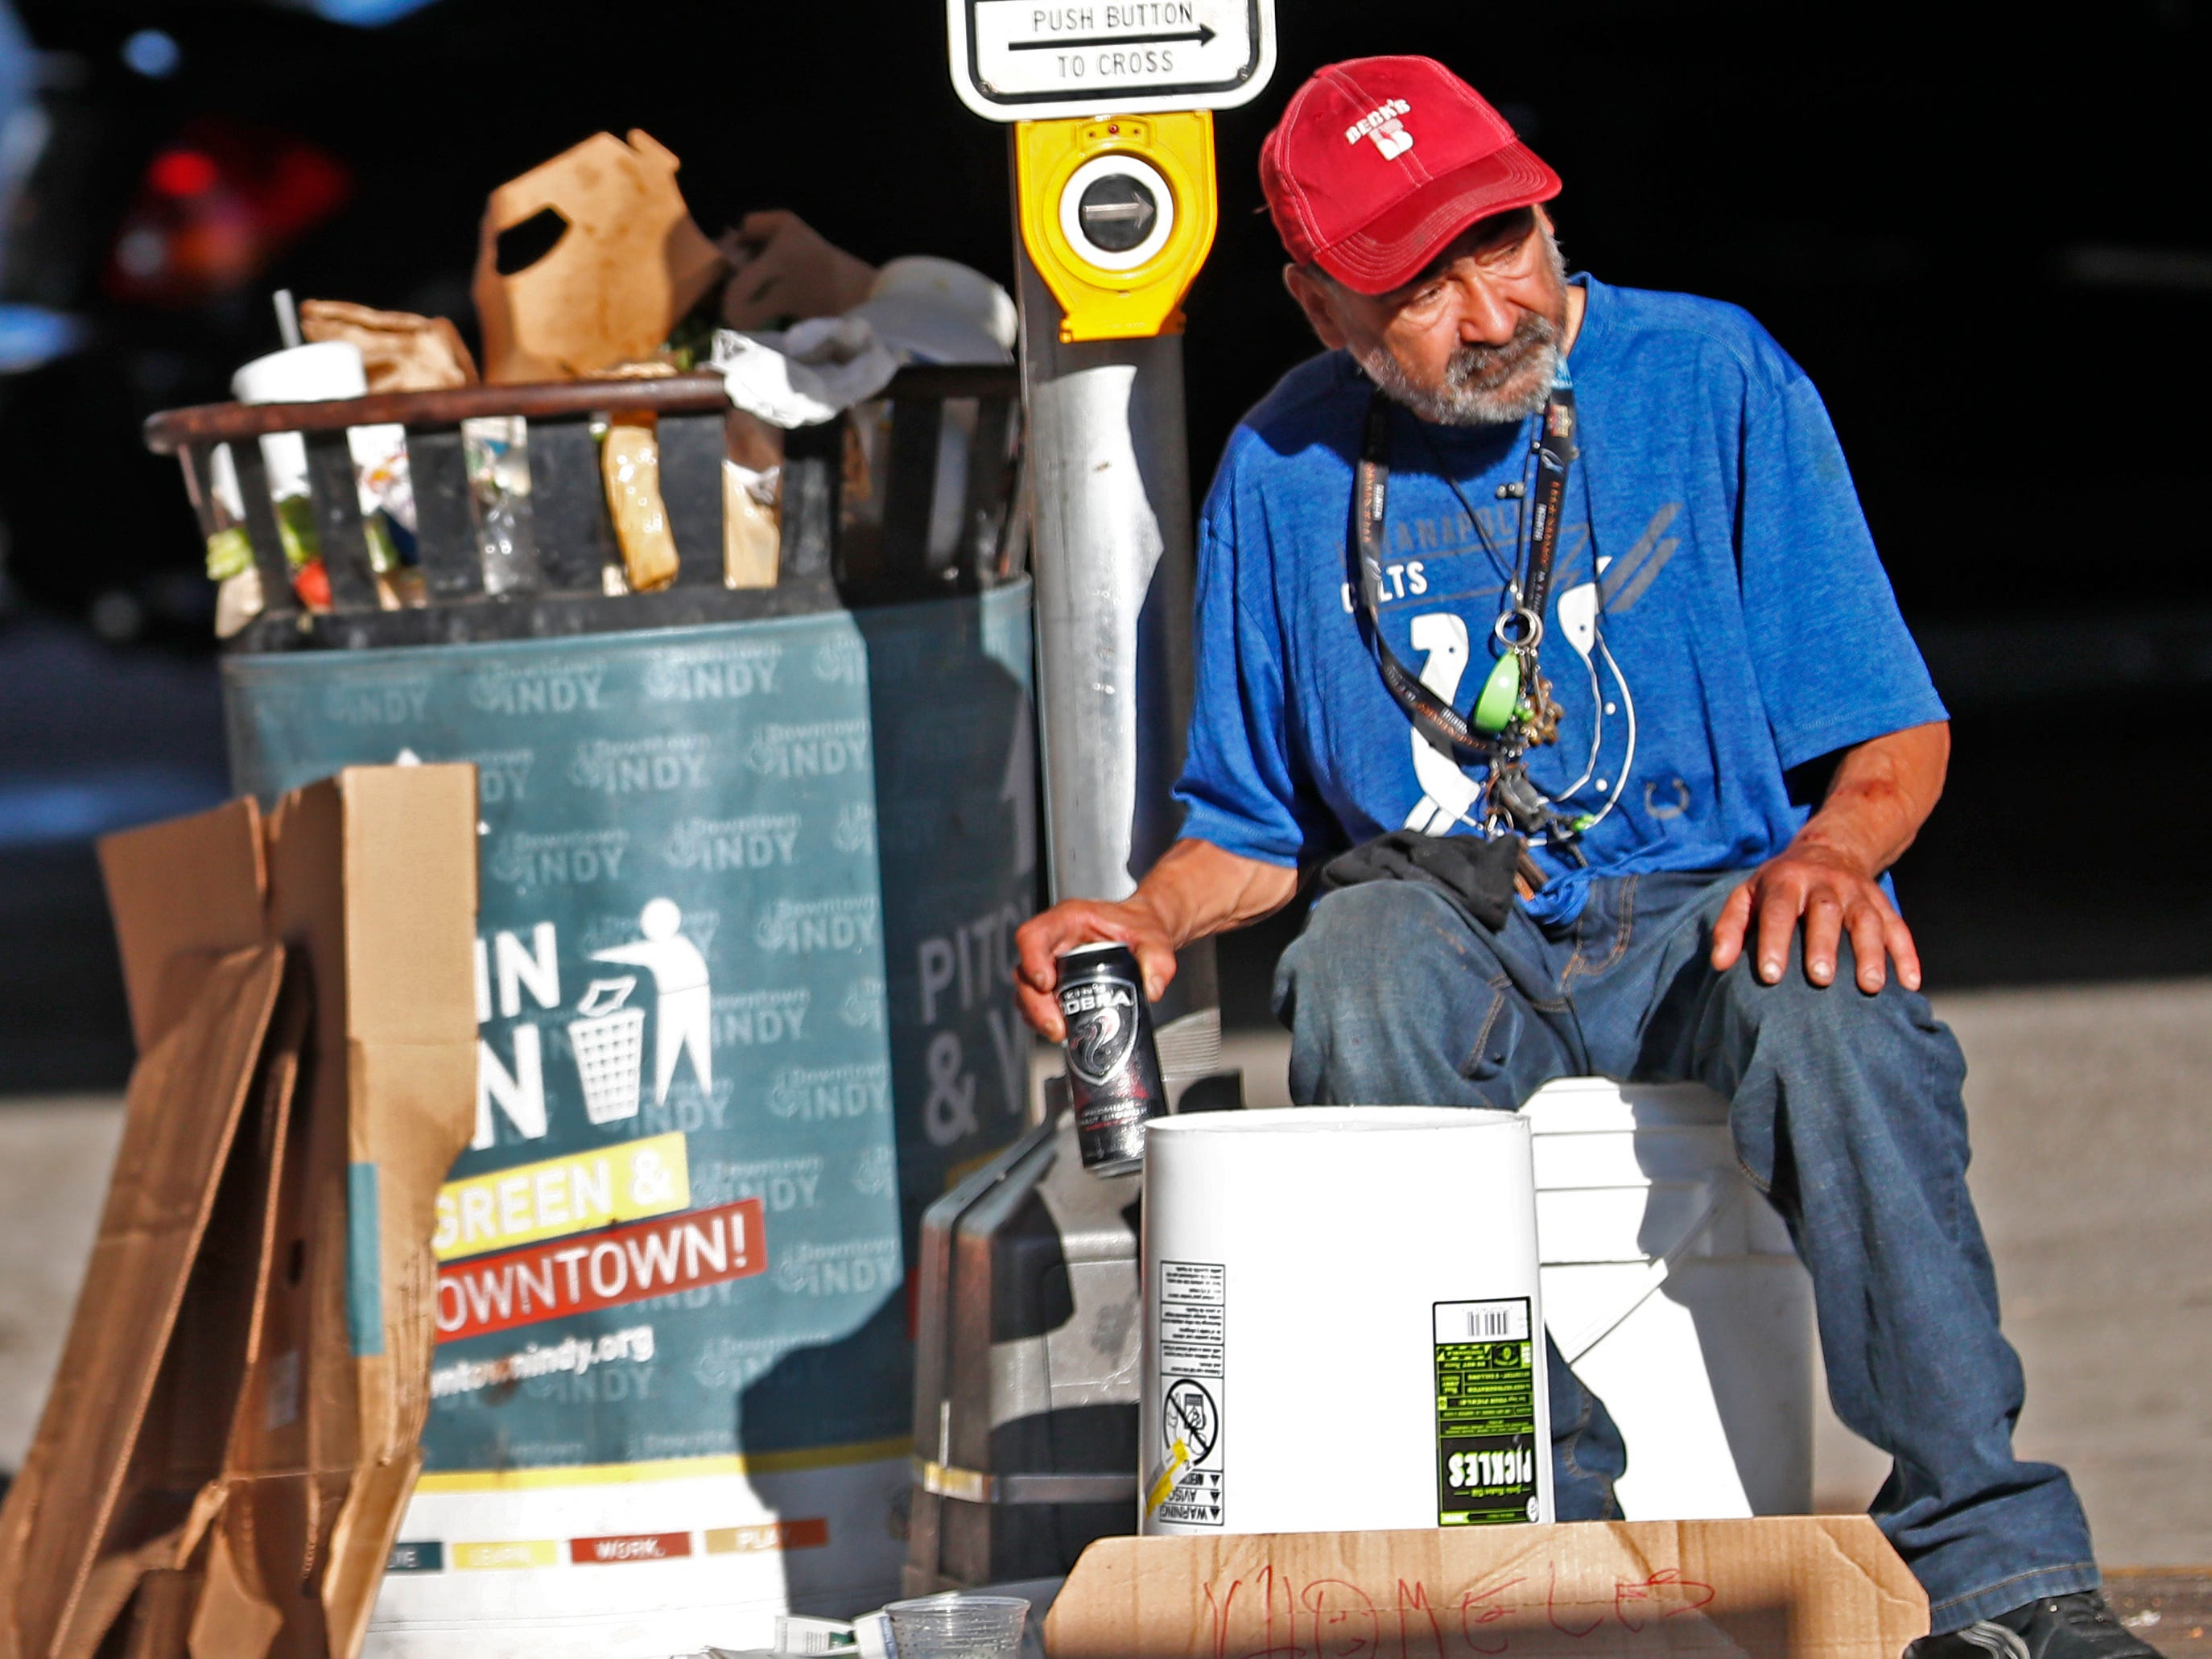 Roberto Green, a homeless man, waits for handouts in downtown Indianapolis, Thursday, Aug. 9, 2018.  He says he is waiting for disability.  Coalition for Homelessness Intervention & Prevention (CHIP) and the city of Indianapolis have proposed a plan to end homelessness in the city by 2023.